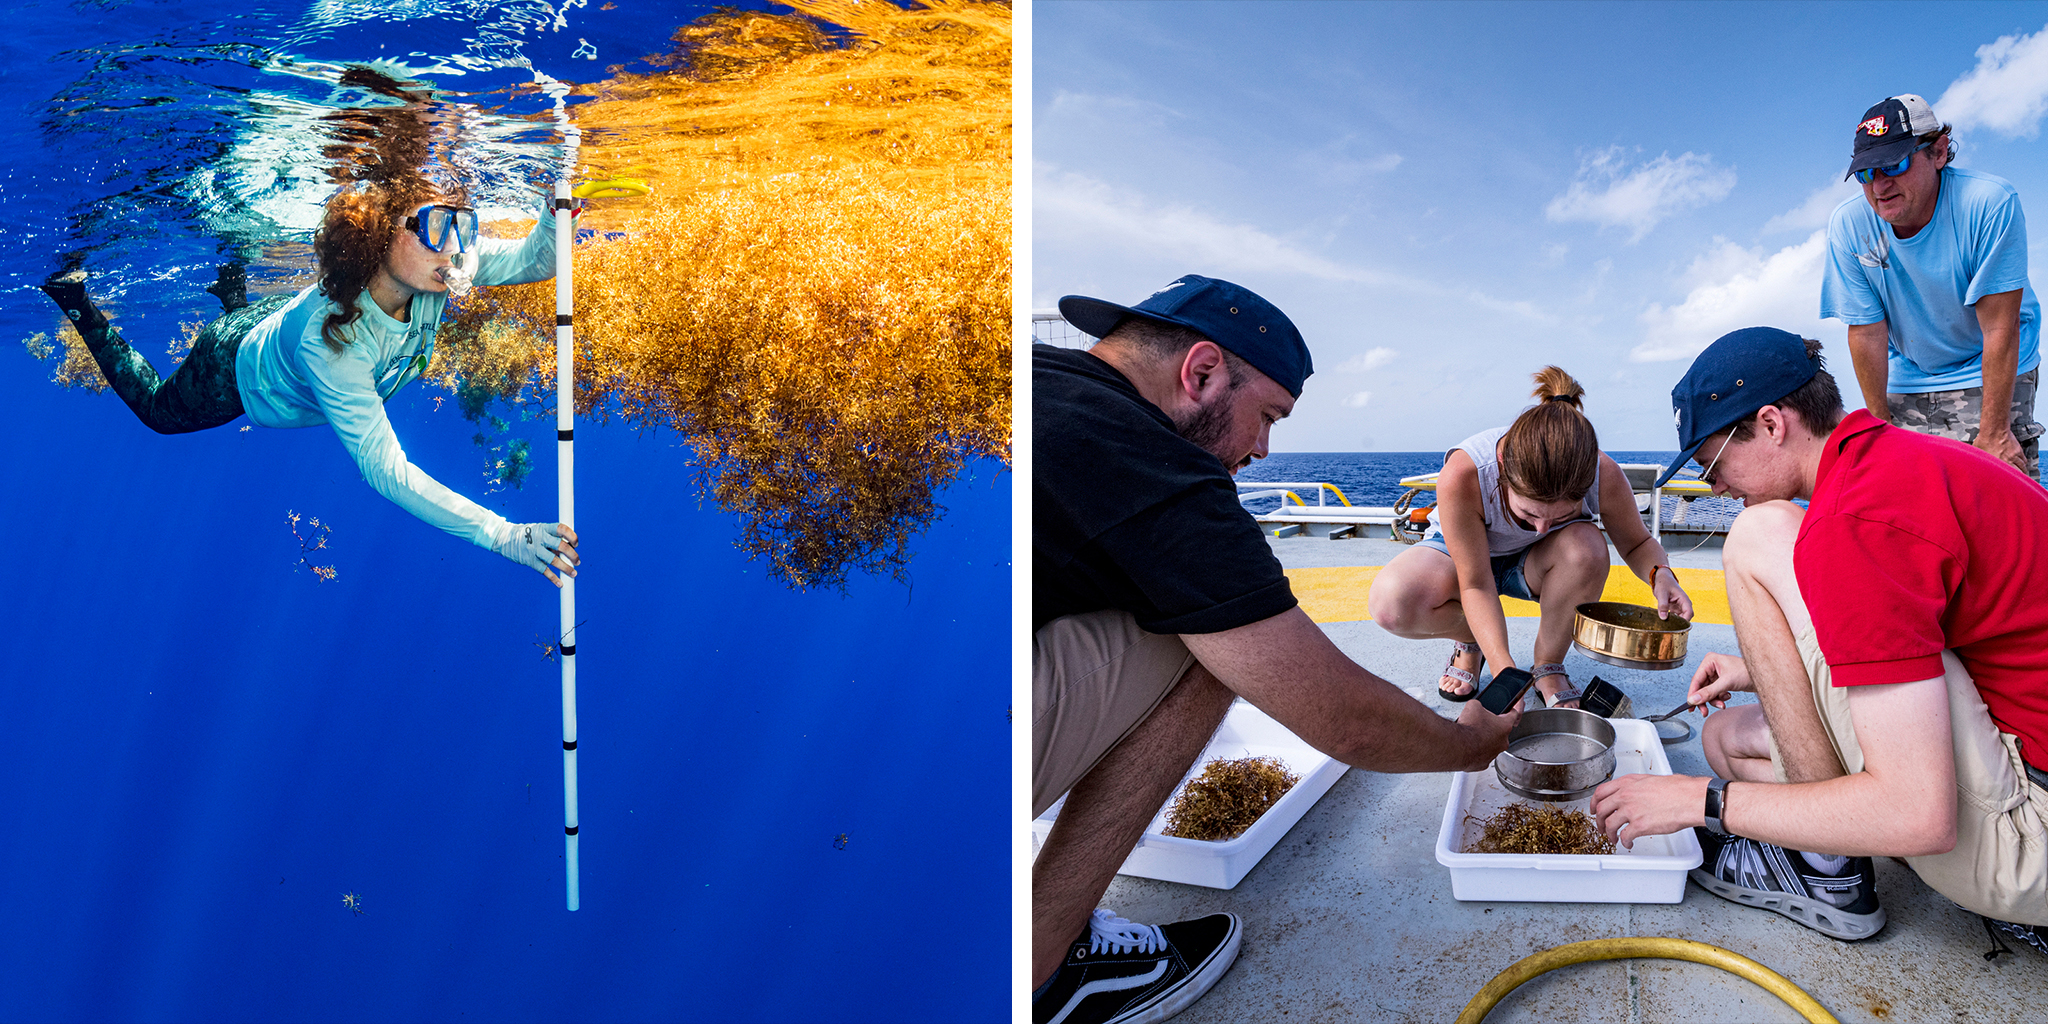 (L) University of Florida scientist Nerine Constant measures a mat of sargassum seaweed as part of the study to see if sargassum might act as an incubator to sea turtles. (R) Scientists sort microplastics shortly after trawling for it in the Sargasso Sea.